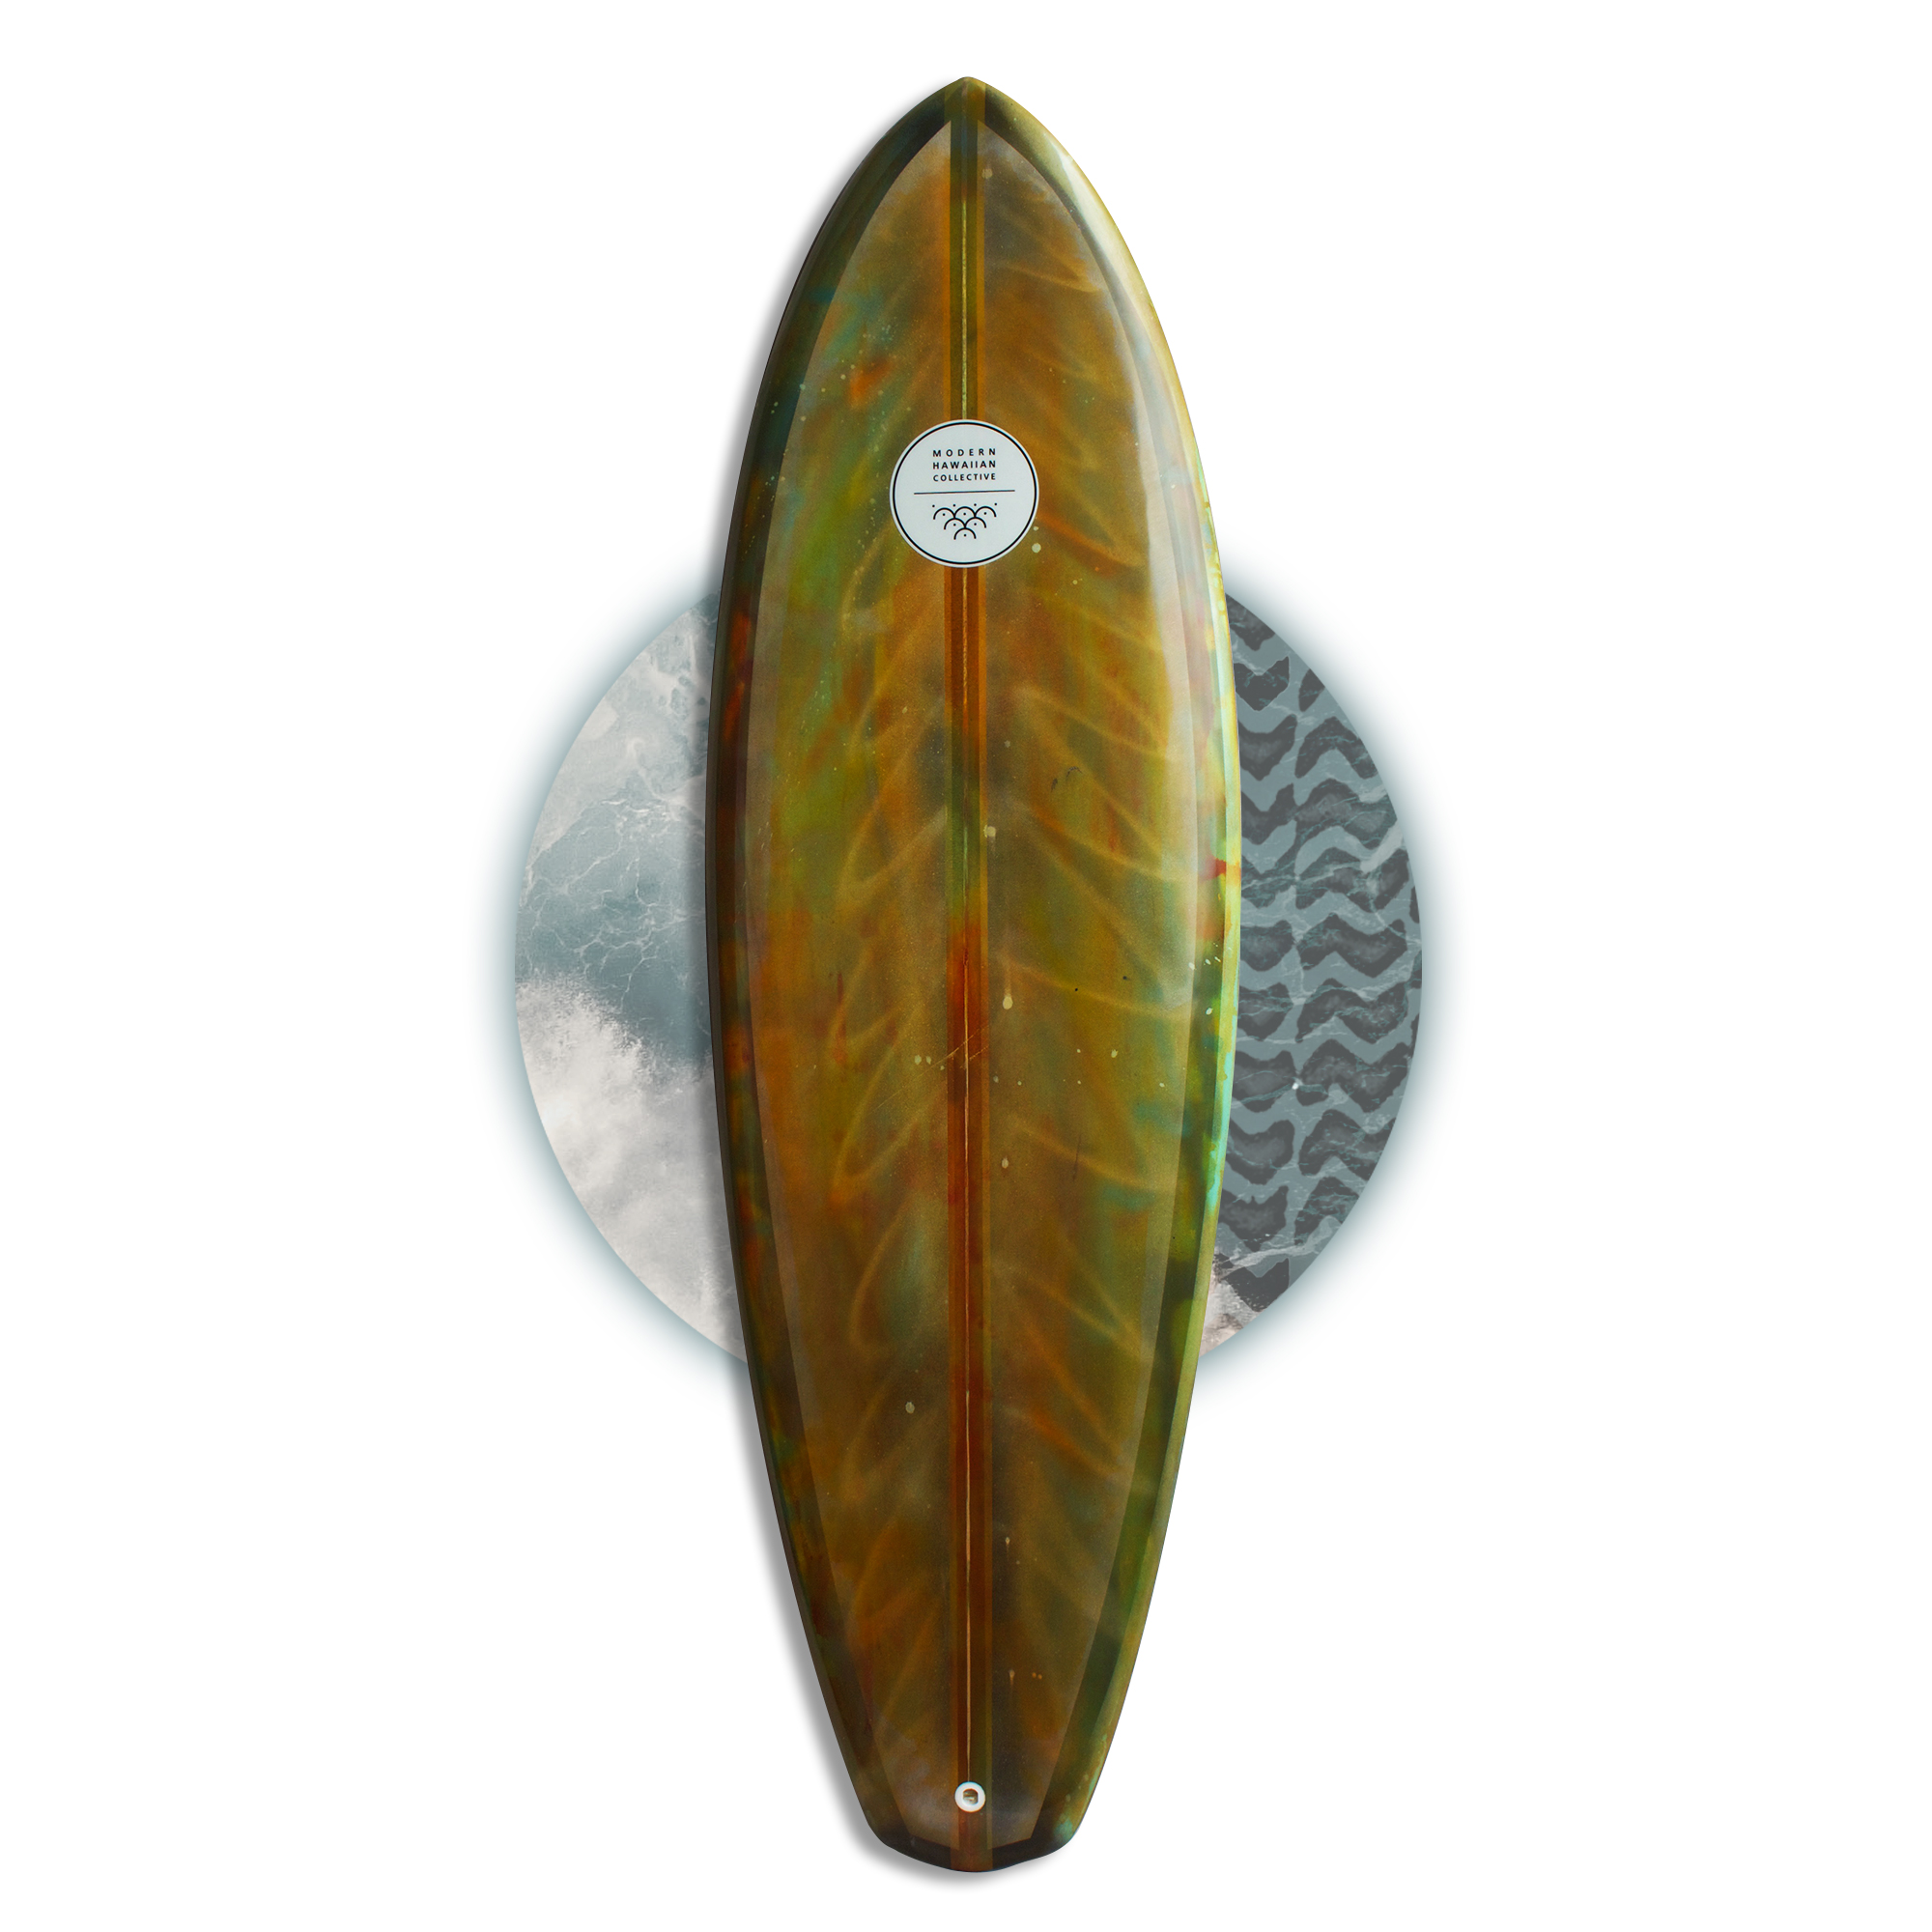 MHC_BoardDesigns_v1_03.jpg